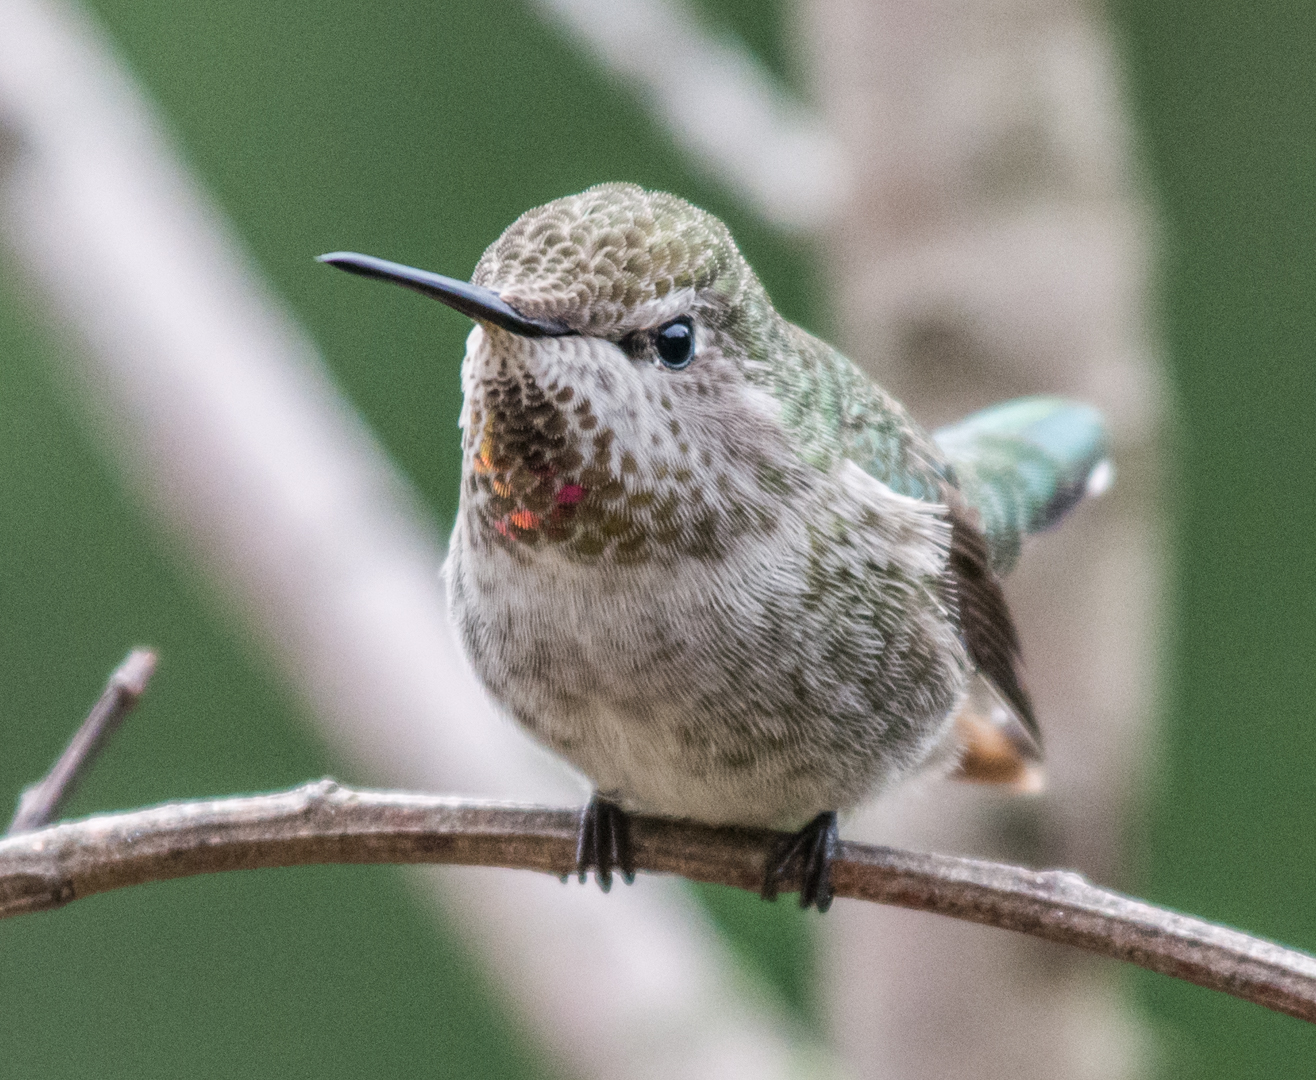 Photo of the Week 15:  Anna's Hummingbird, female (Calypte anna)   EQ: D7100 f/4 70-200mm with 1.4x TC  Taken: 11-22-14 13:29  Setting: 420mm, 1/640s, f/5.6, ISO1600  Condition: Clouds and in shade